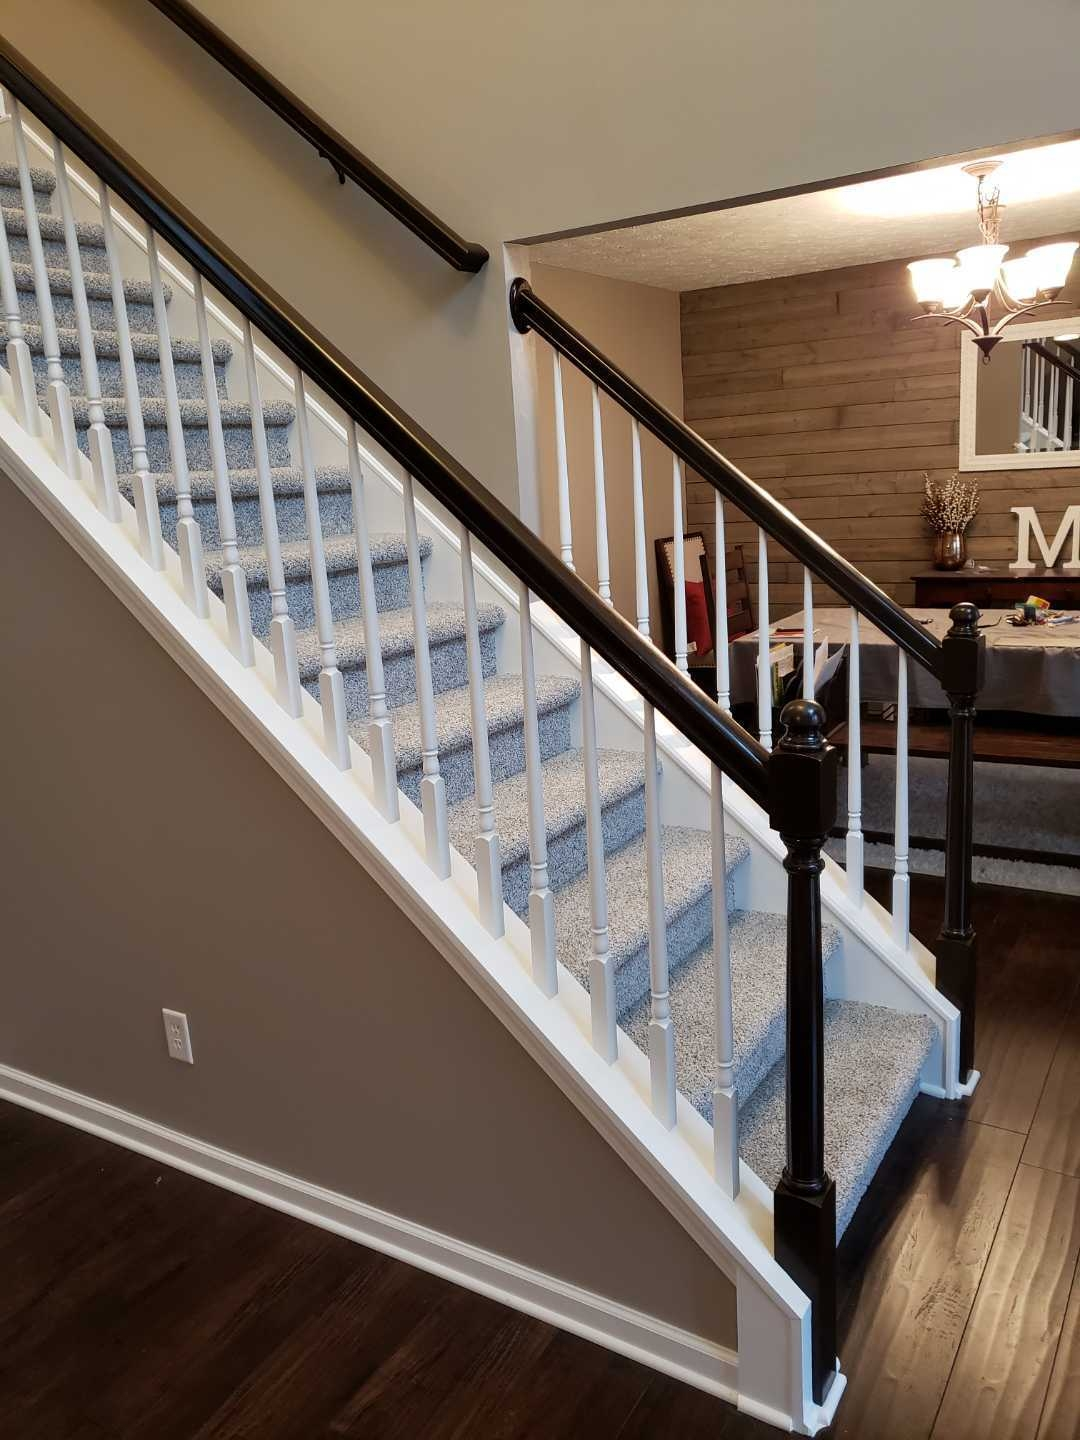 Railing Refinishing Cleveland Lifetime Touch Ups | Cost To Refinish Wood Railing | Stair Treads | Interior | Gel Stain | Paint | Balusters